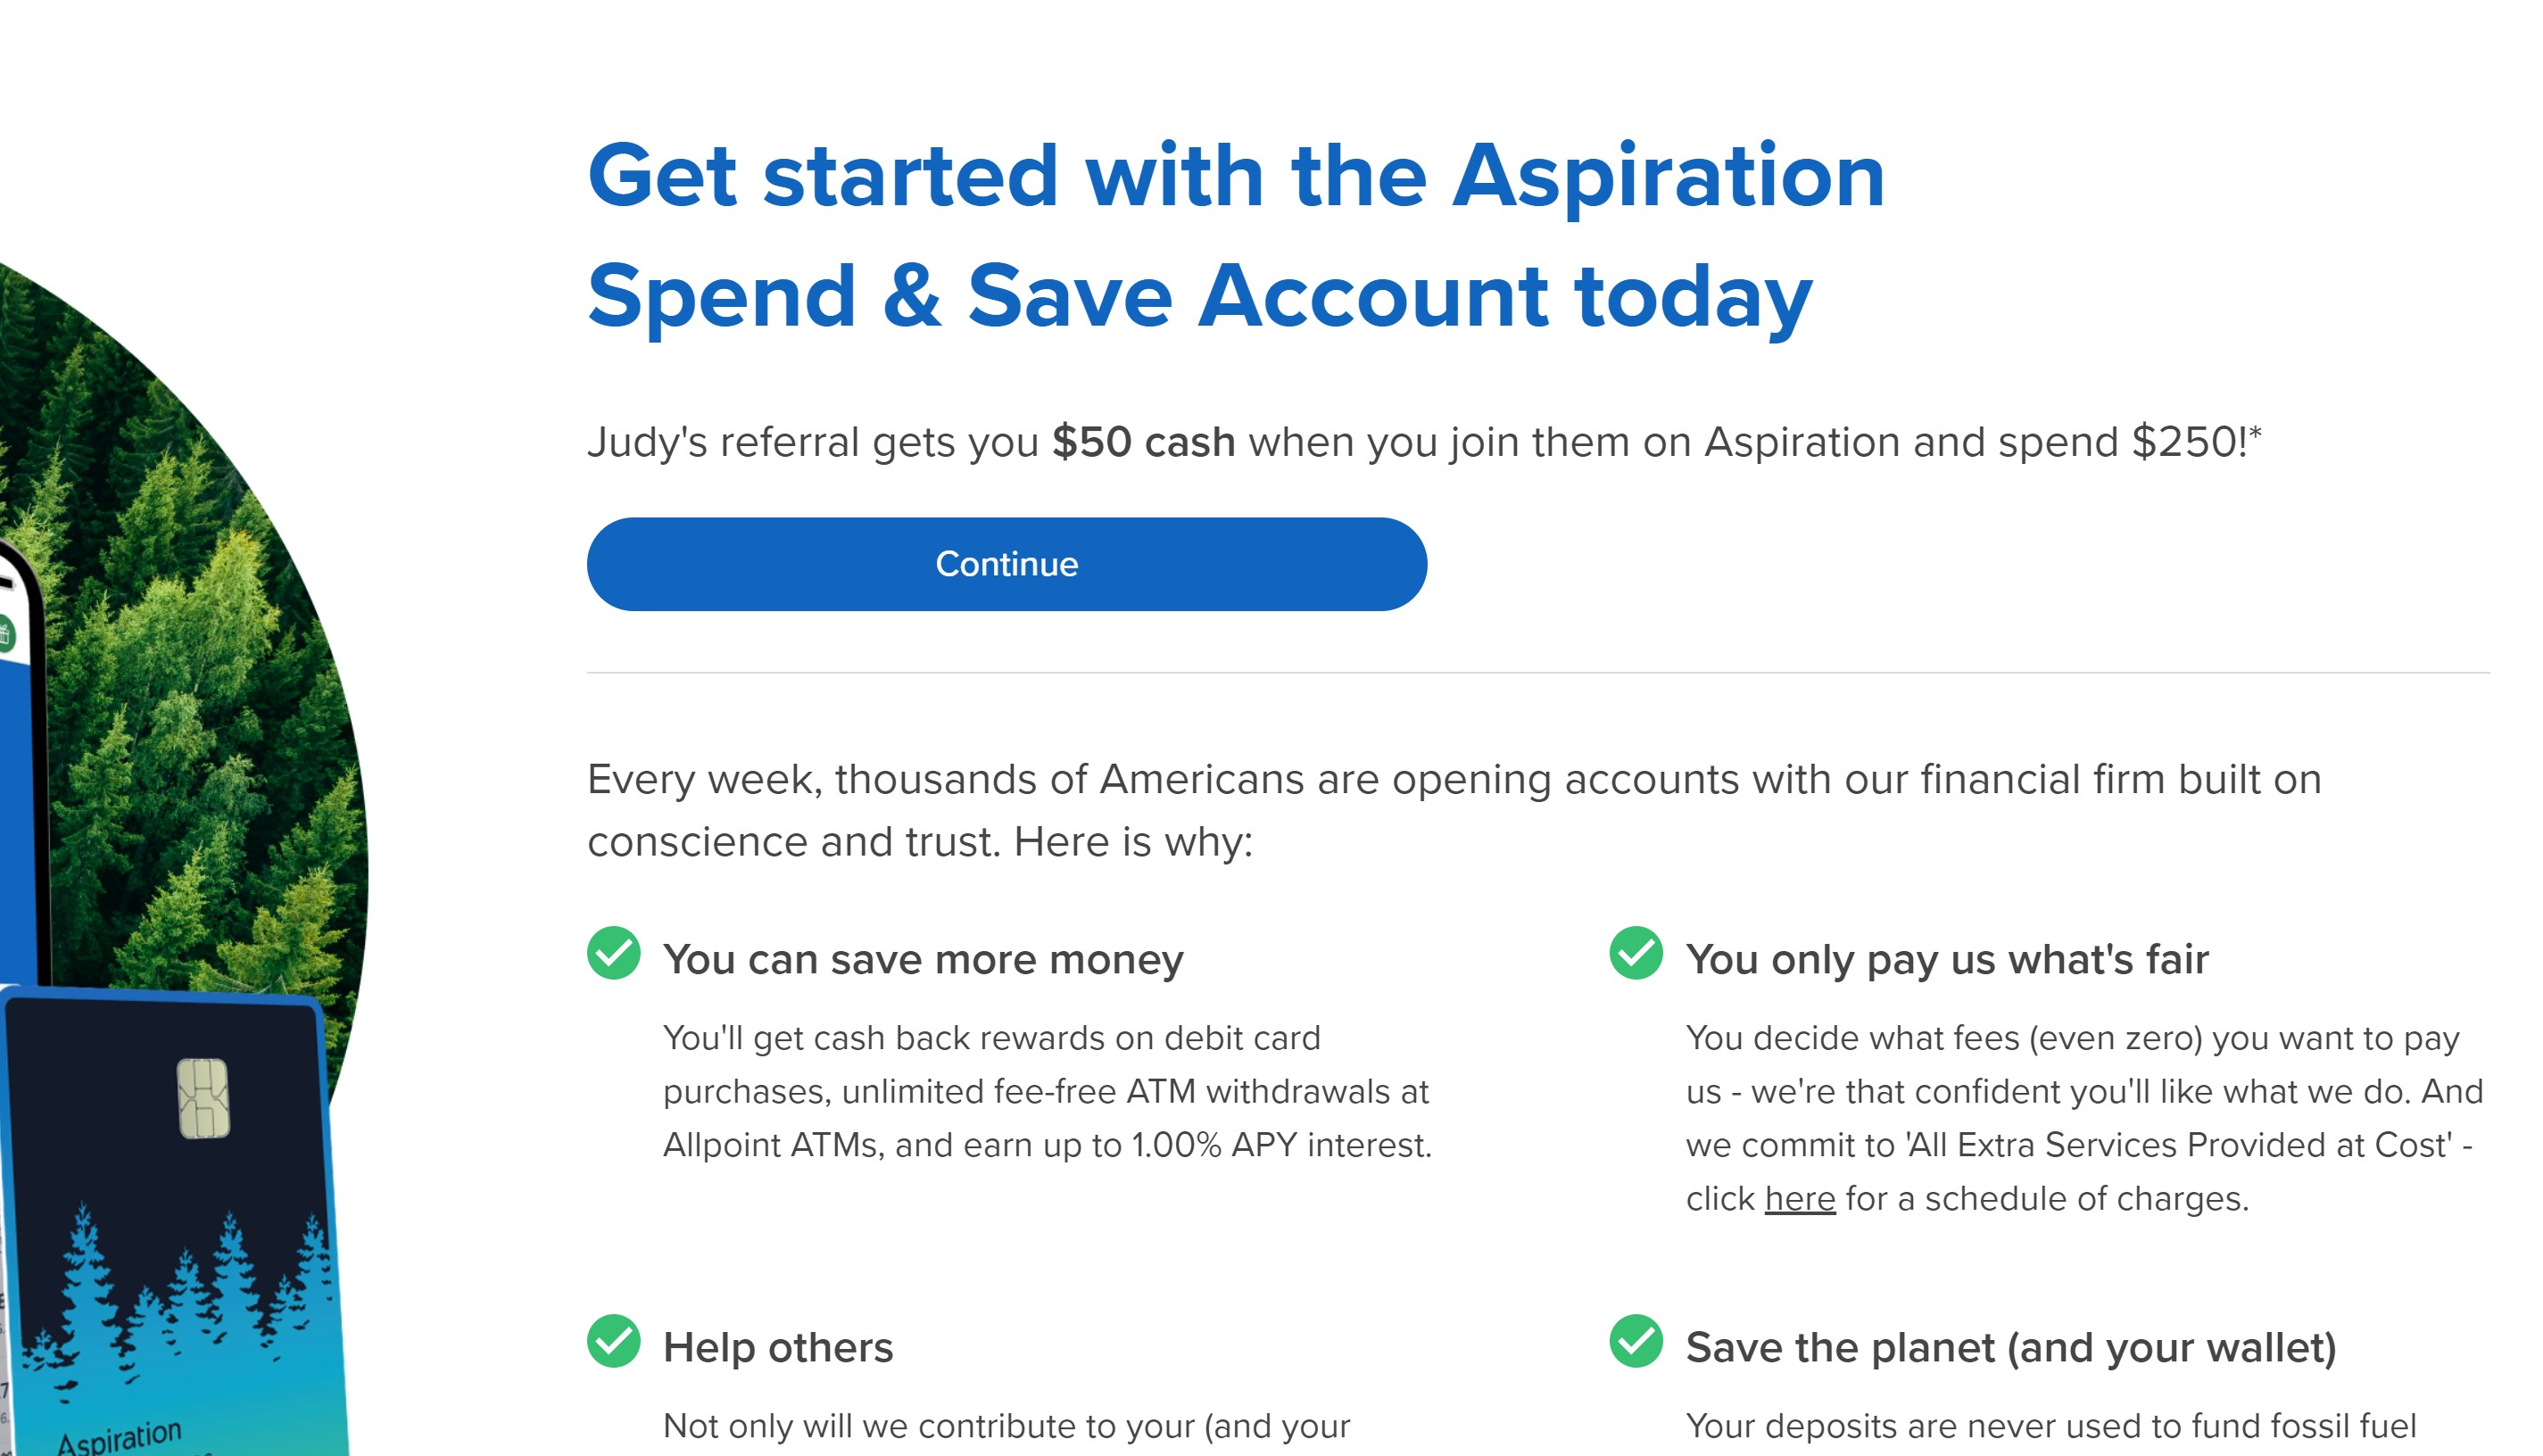 Sign up with my link, and you'll get $50 when you open an Aspiration Spend & Save Account.